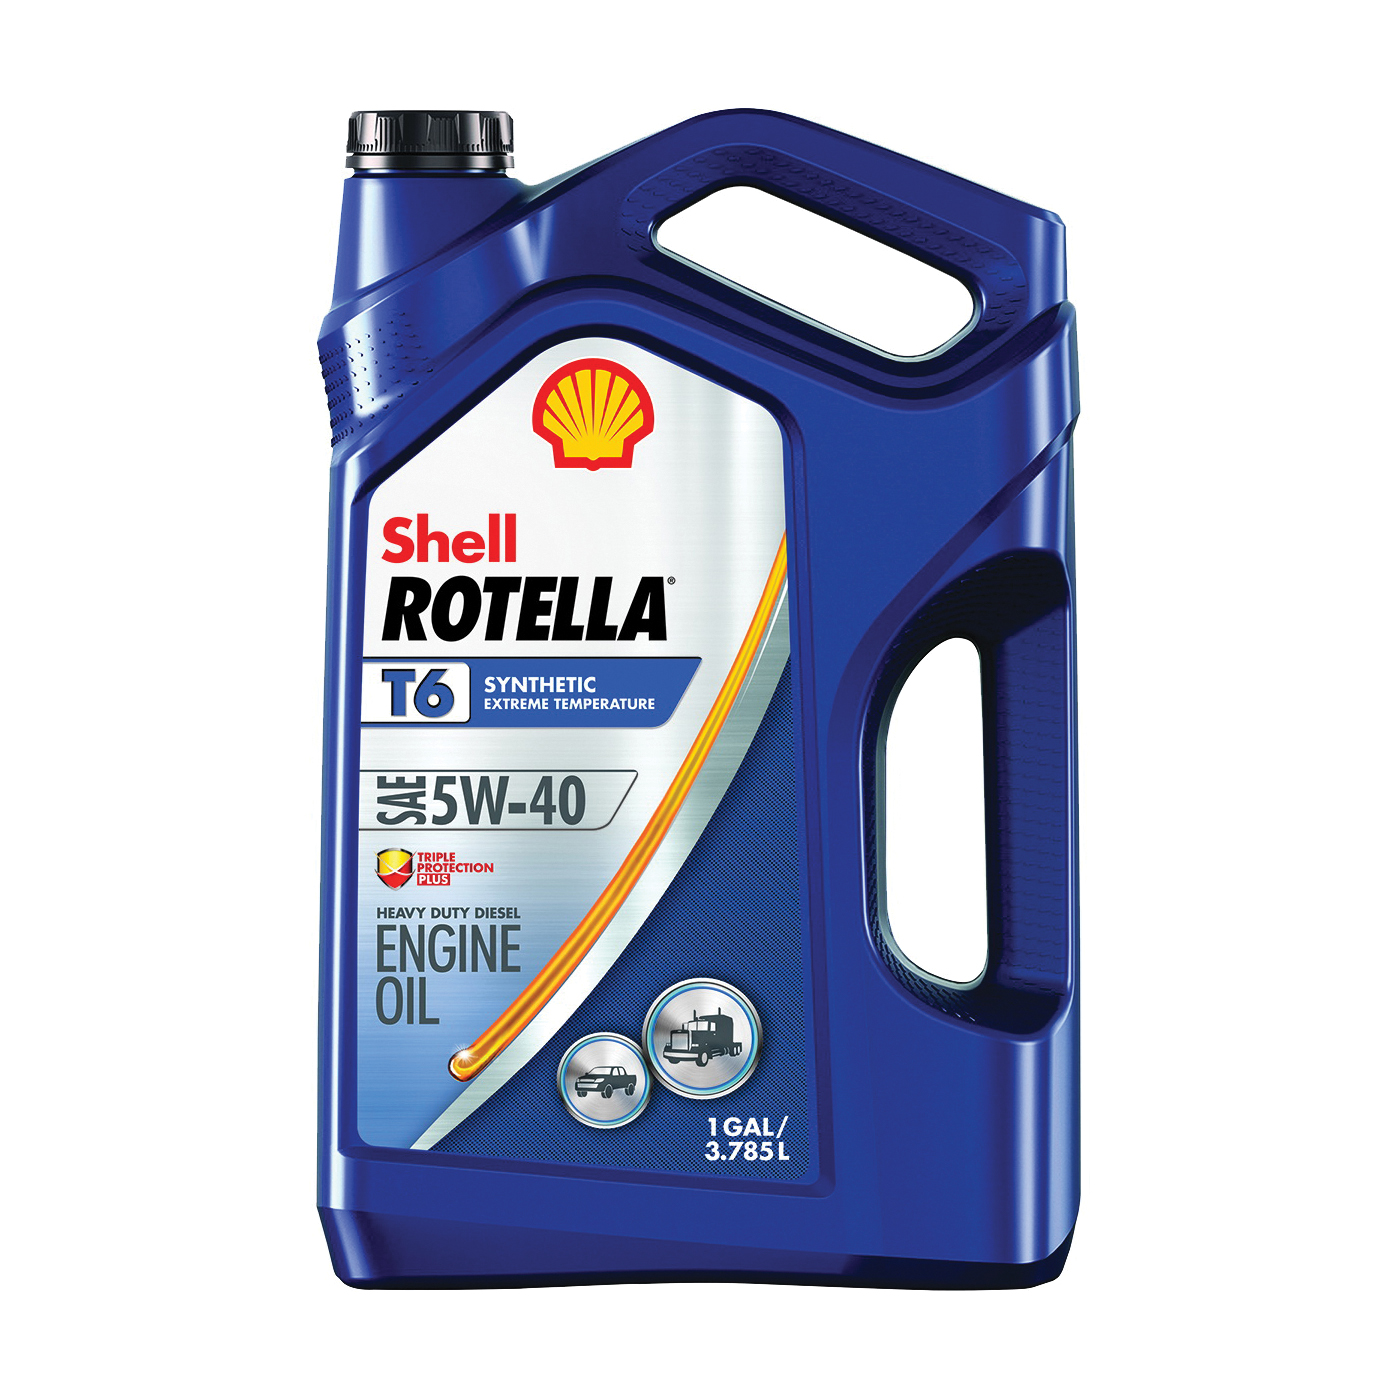 Picture of Shell Rotella T6 Series 550045347 Diesel Oil, 5W-40, 1 gal Package, Jug